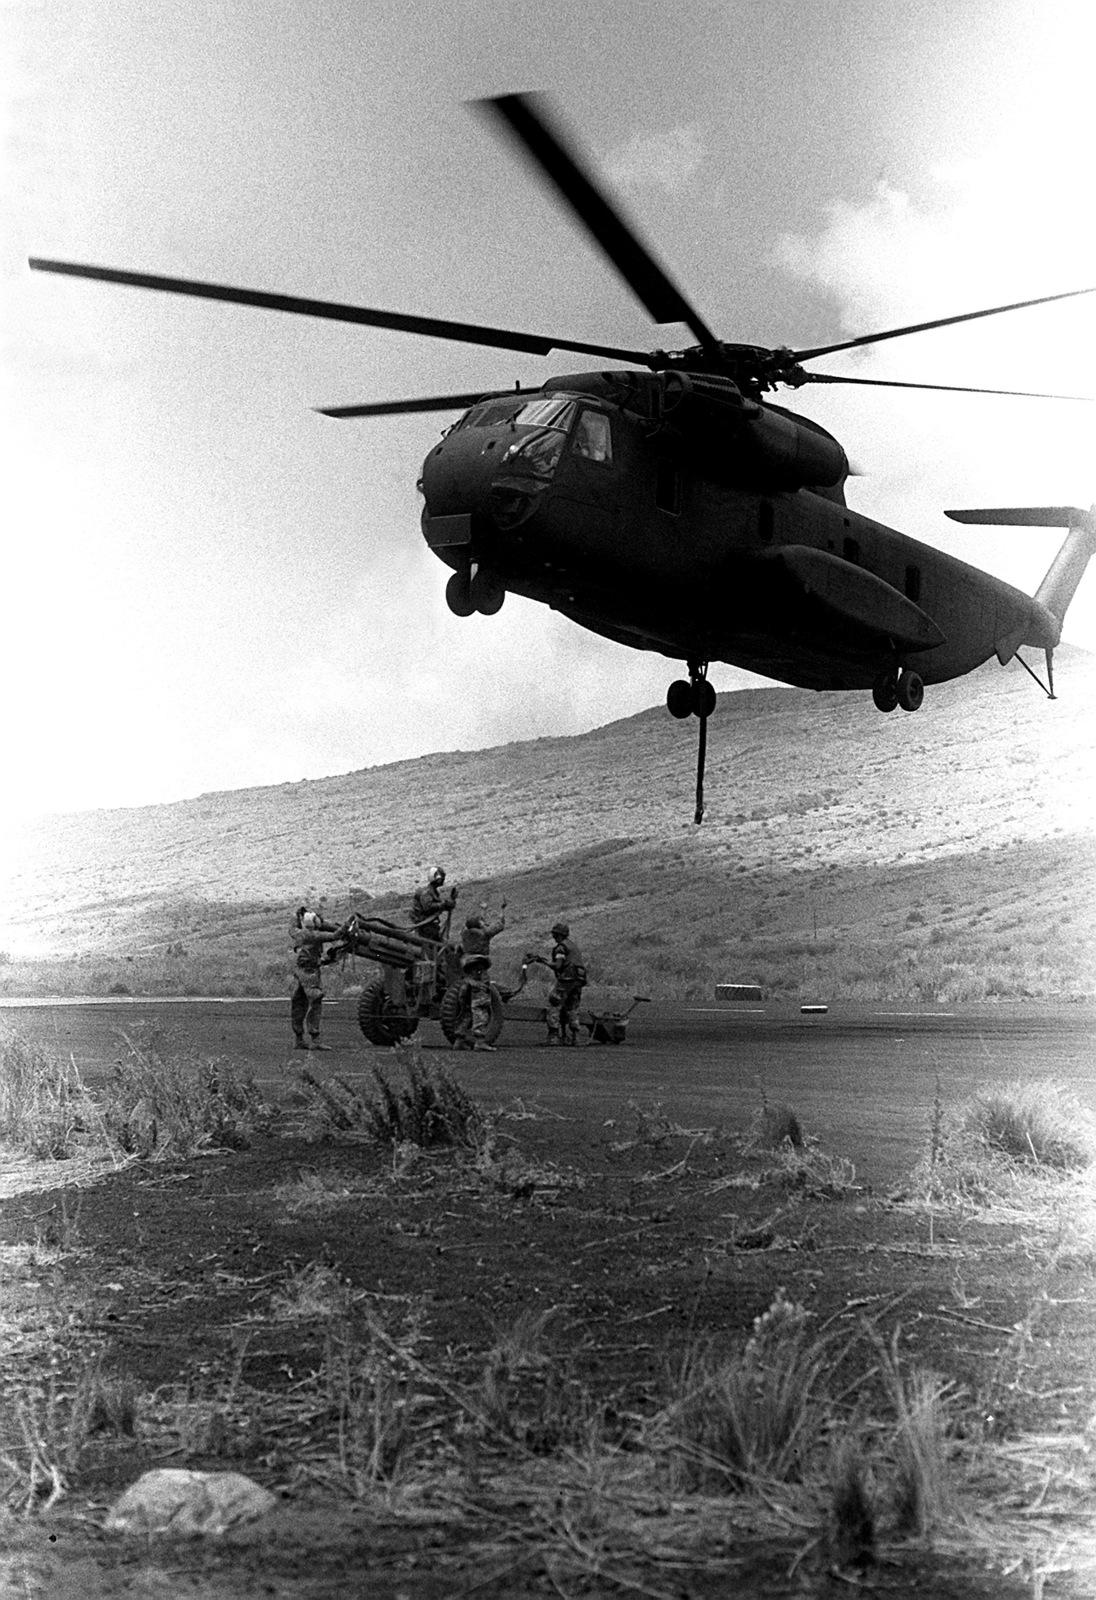 A Marine CH-53 Sea Stallion helicopter from Marine Helicopter Squadron 463 (HMM-463) is used to airlift a 105mm howitzer gun to Kilo Battery, 1ST Battalion, 12th Marines. They are going through combat readiness evaluation at the Pakalula Training Area